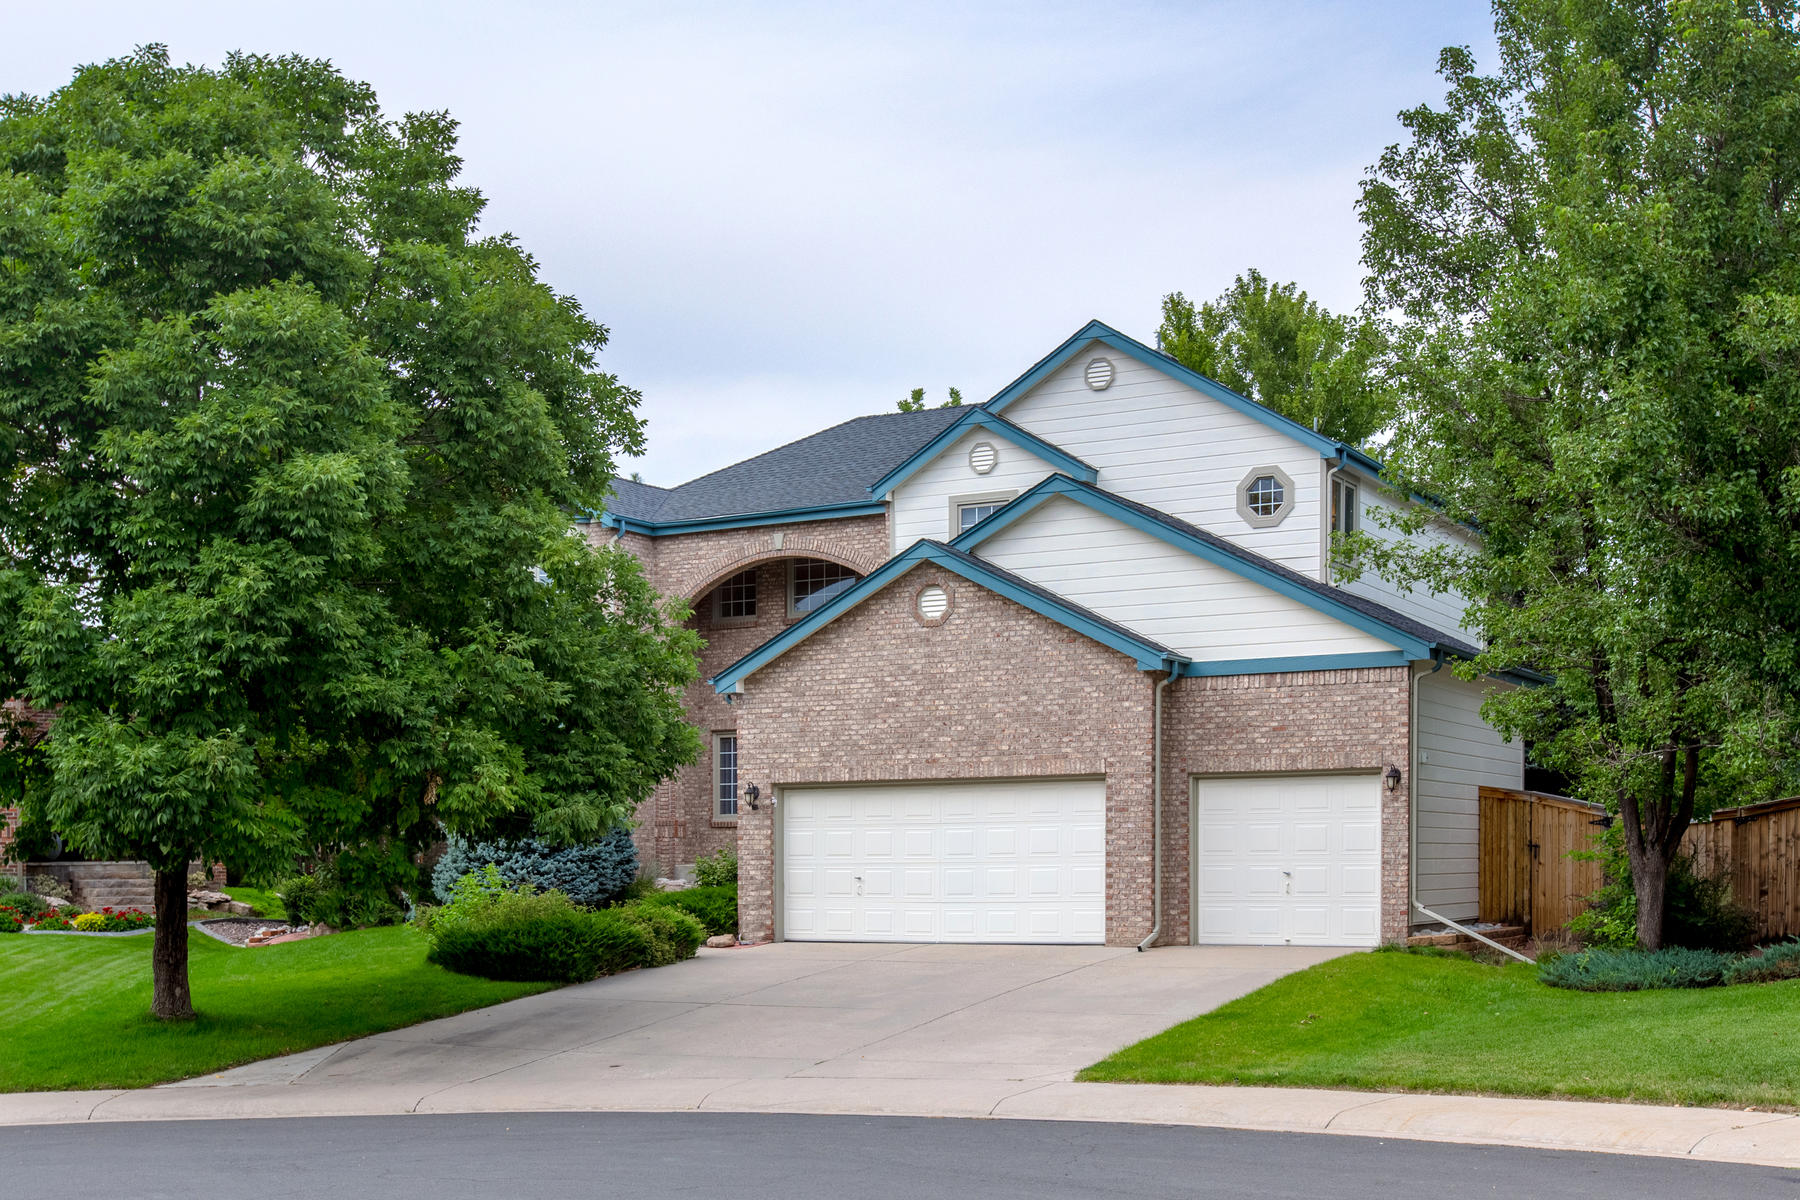 Property for Active at This lovely home in Littleton has it all including a beautiful cul de sac lot. 6429 Serengeti Place Littleton, Colorado 80124 United States